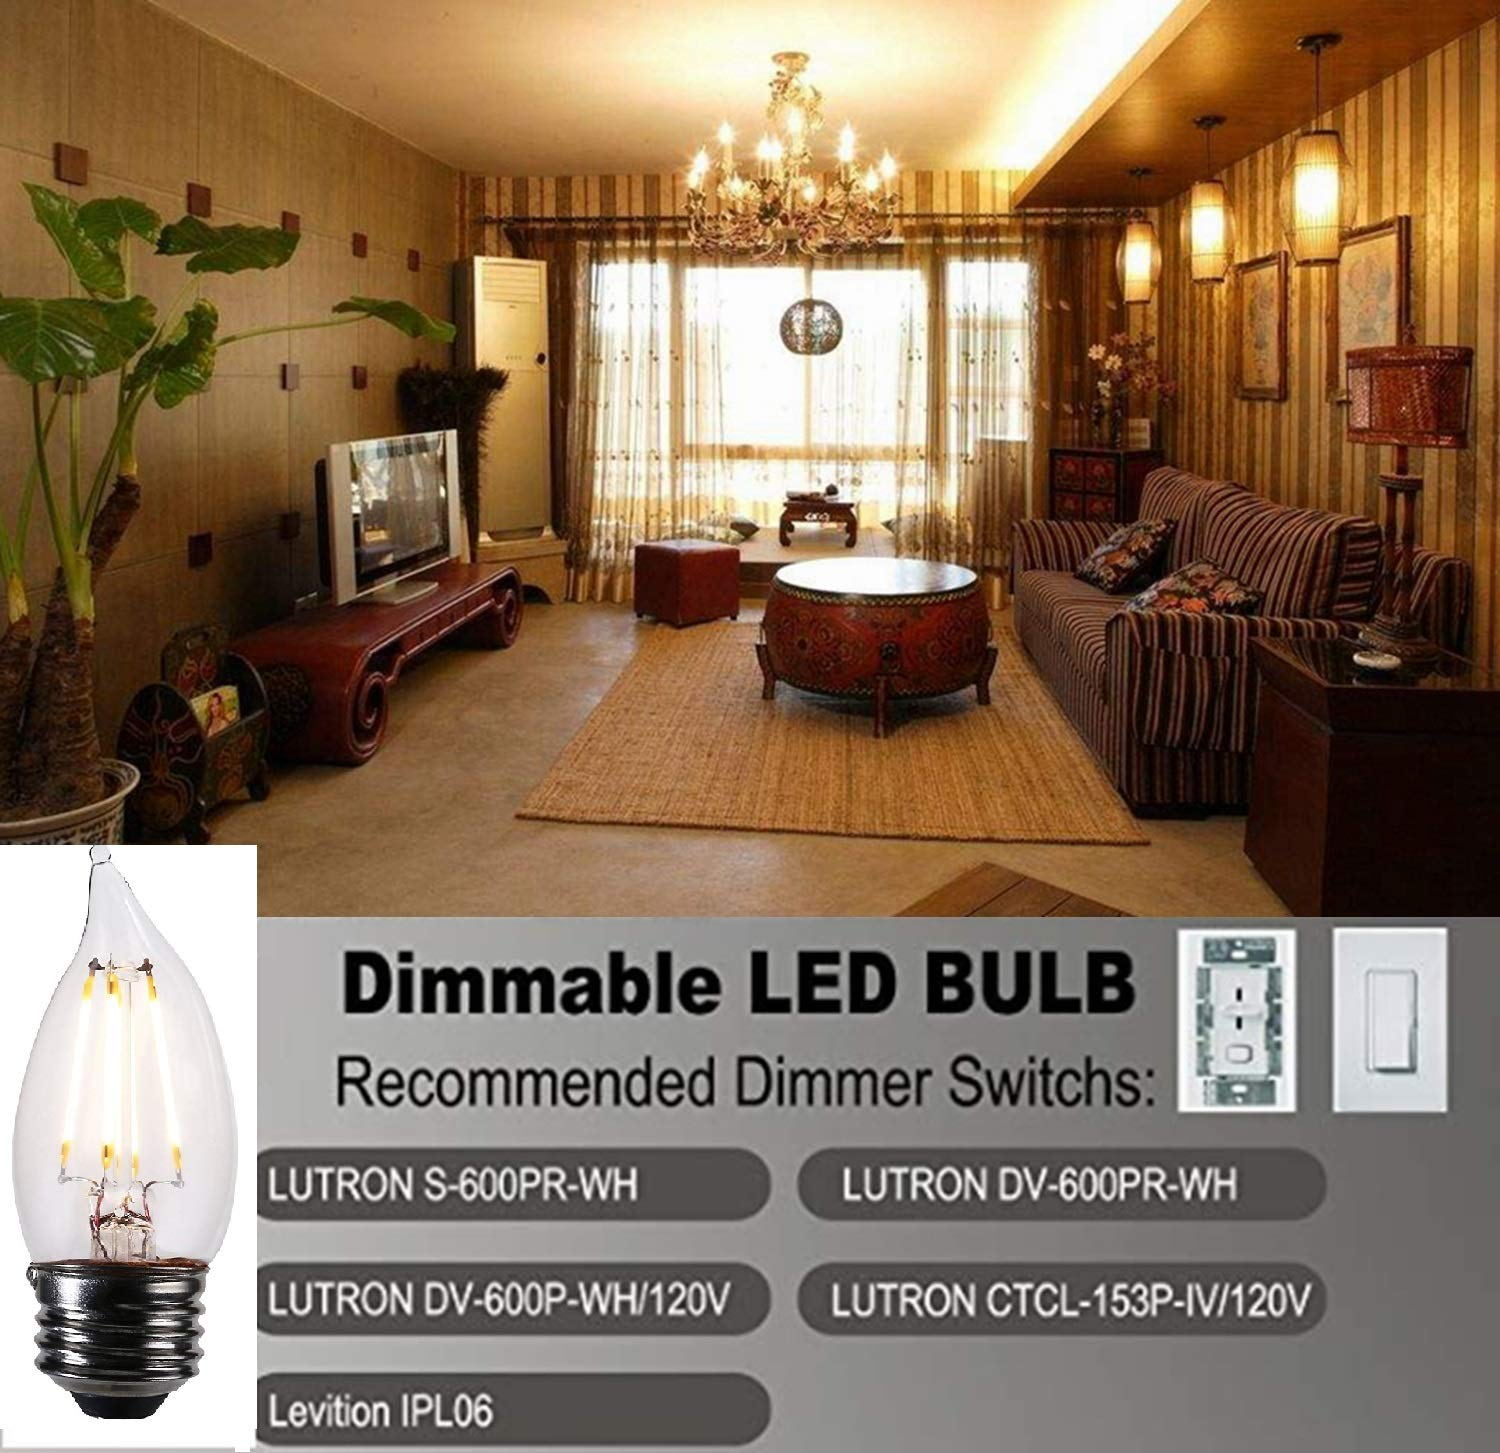 LED Candelabra Light Bulbs Flame tip UL Listed - Dimmable - 450 Lumen - 2700K- 4.5 Watt - E26 Bulb Base - Vintage Filament Indoor Outdoor Led Candelabra Bulb (Warm White, 2Pack)